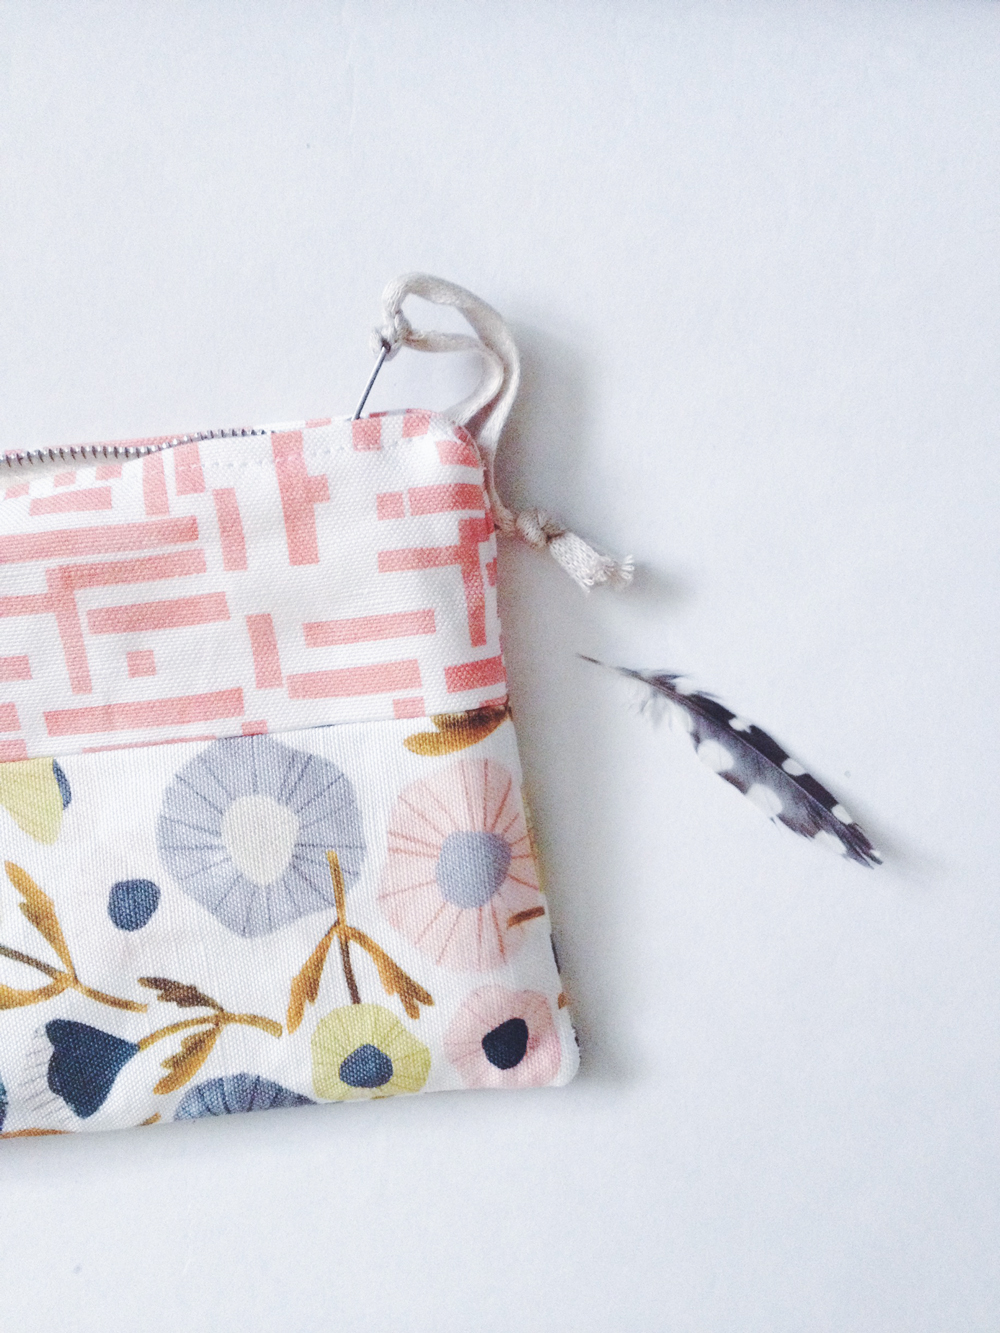 zippered pouch, fabric design illustration, penelope dullaghan